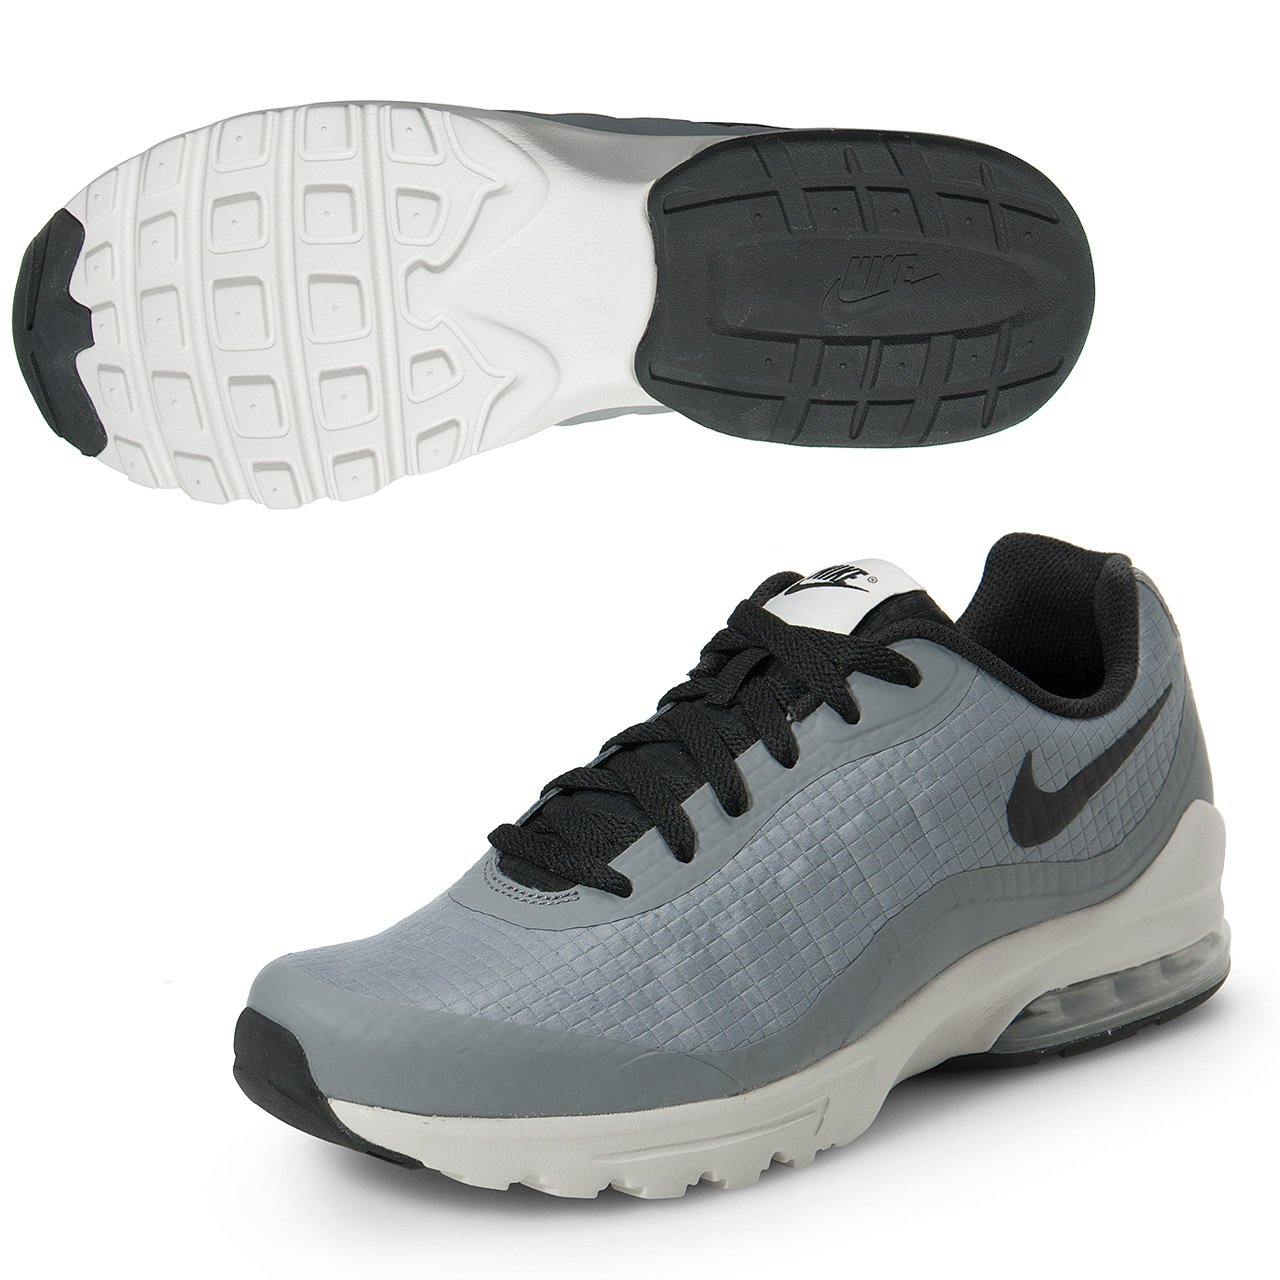 Nike Men's Air Max Invigor SE Cool Grey/Light Bone/Black Athletic Shoe by NIKE